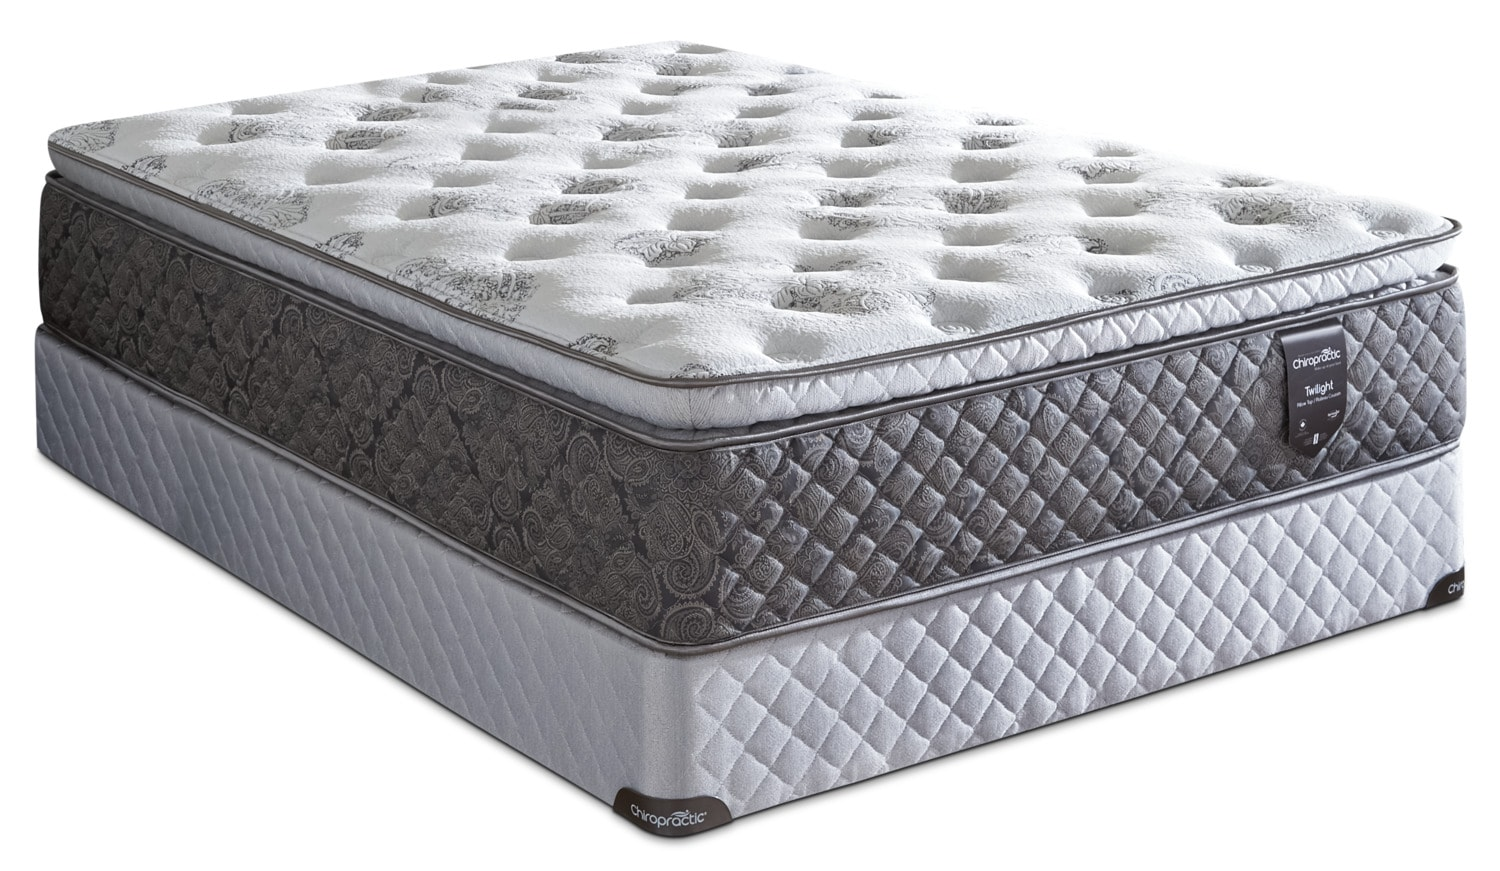 Springwall Chiropractic® Twilight Pillow-Top Luxury Firm Full Mattress Set